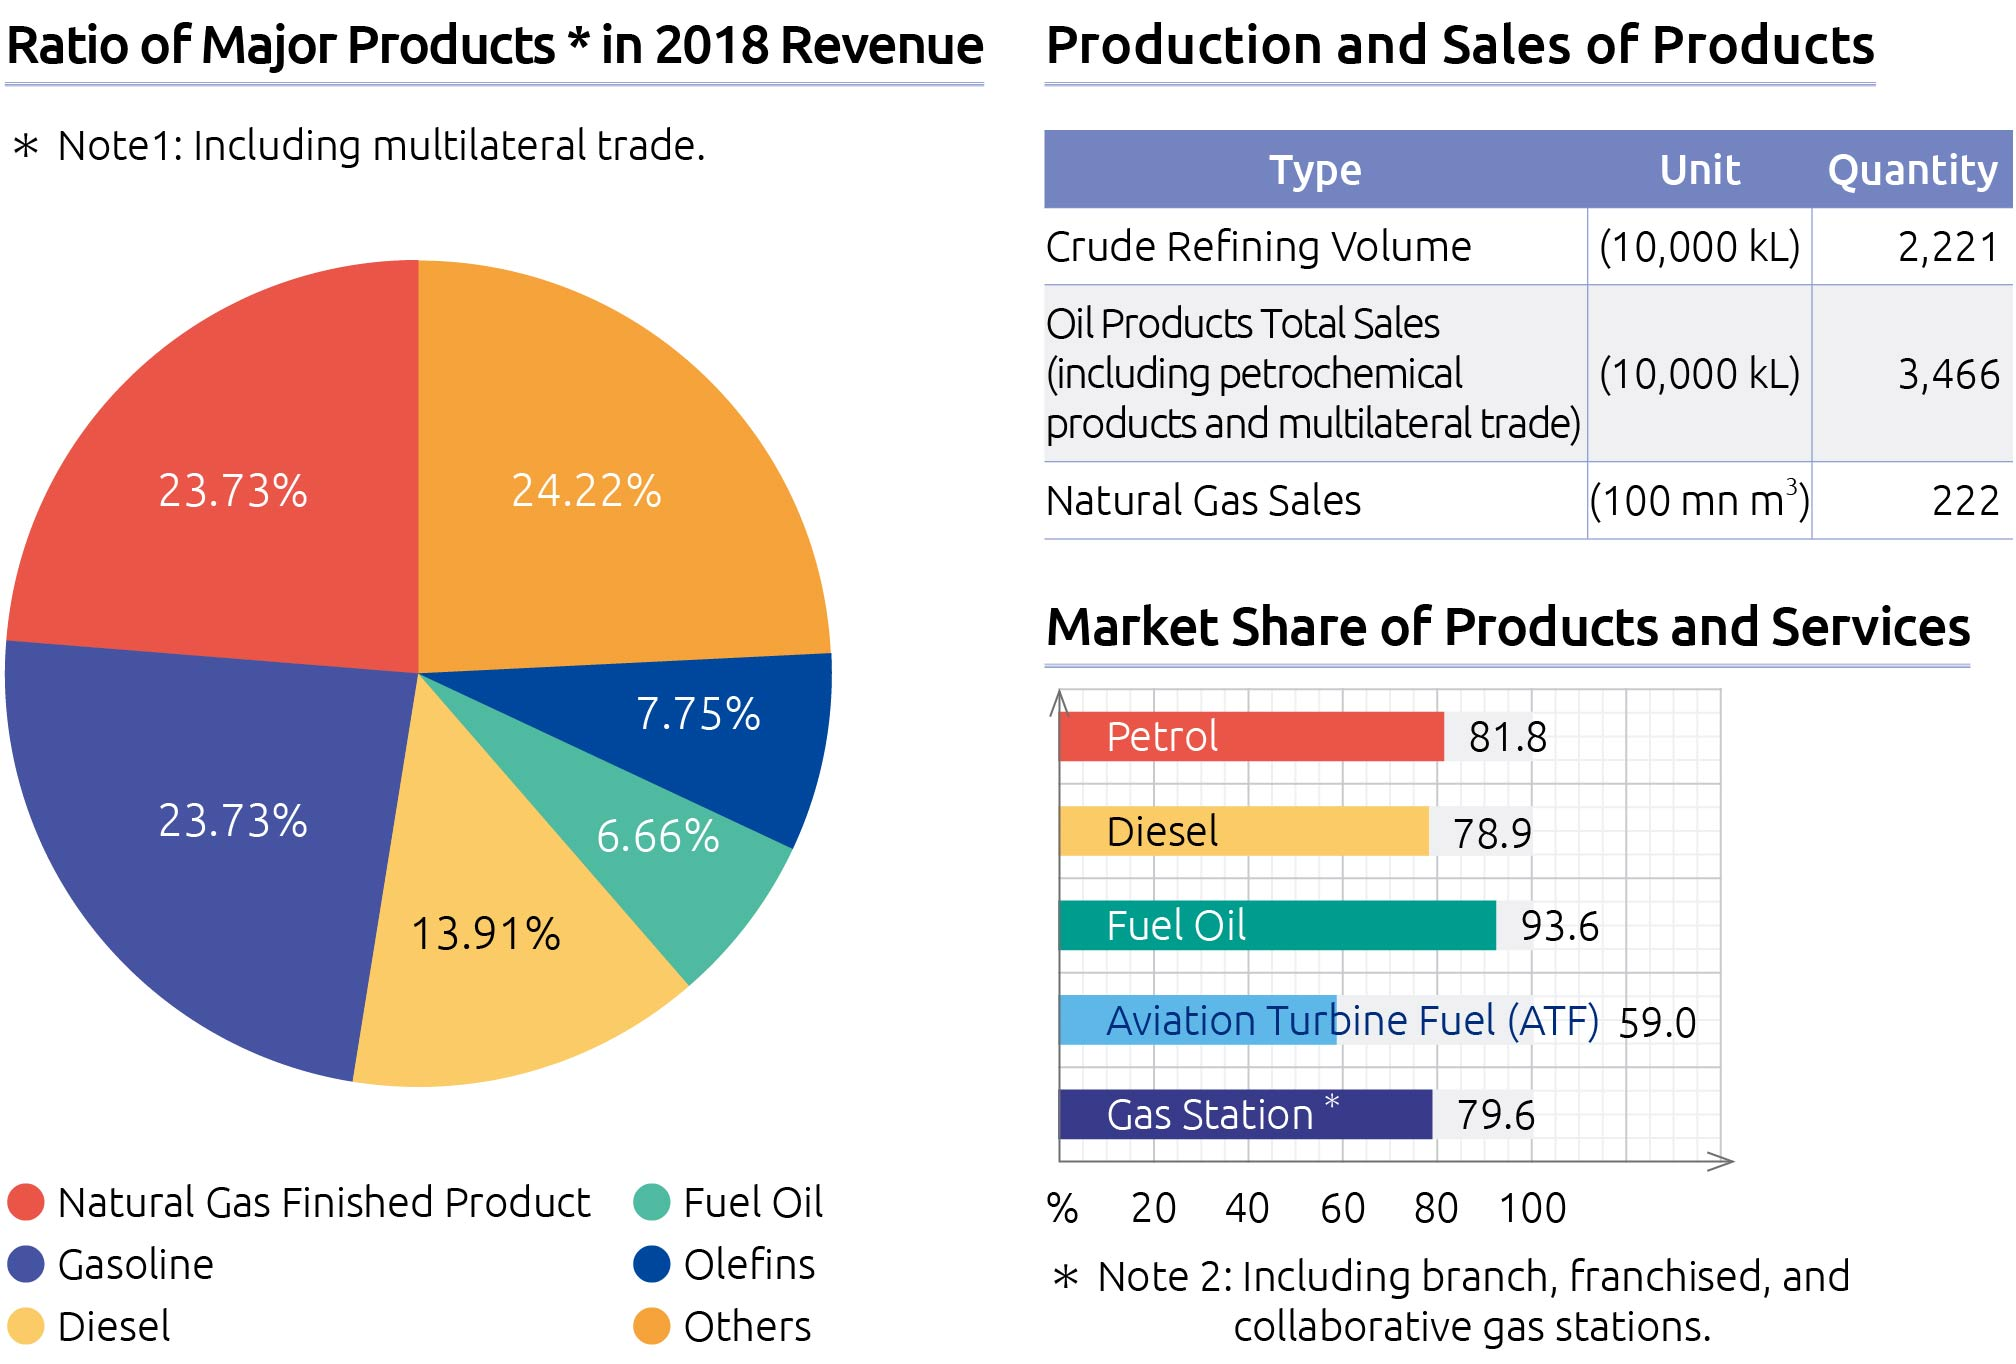 2018 Revenue and Sales of Products